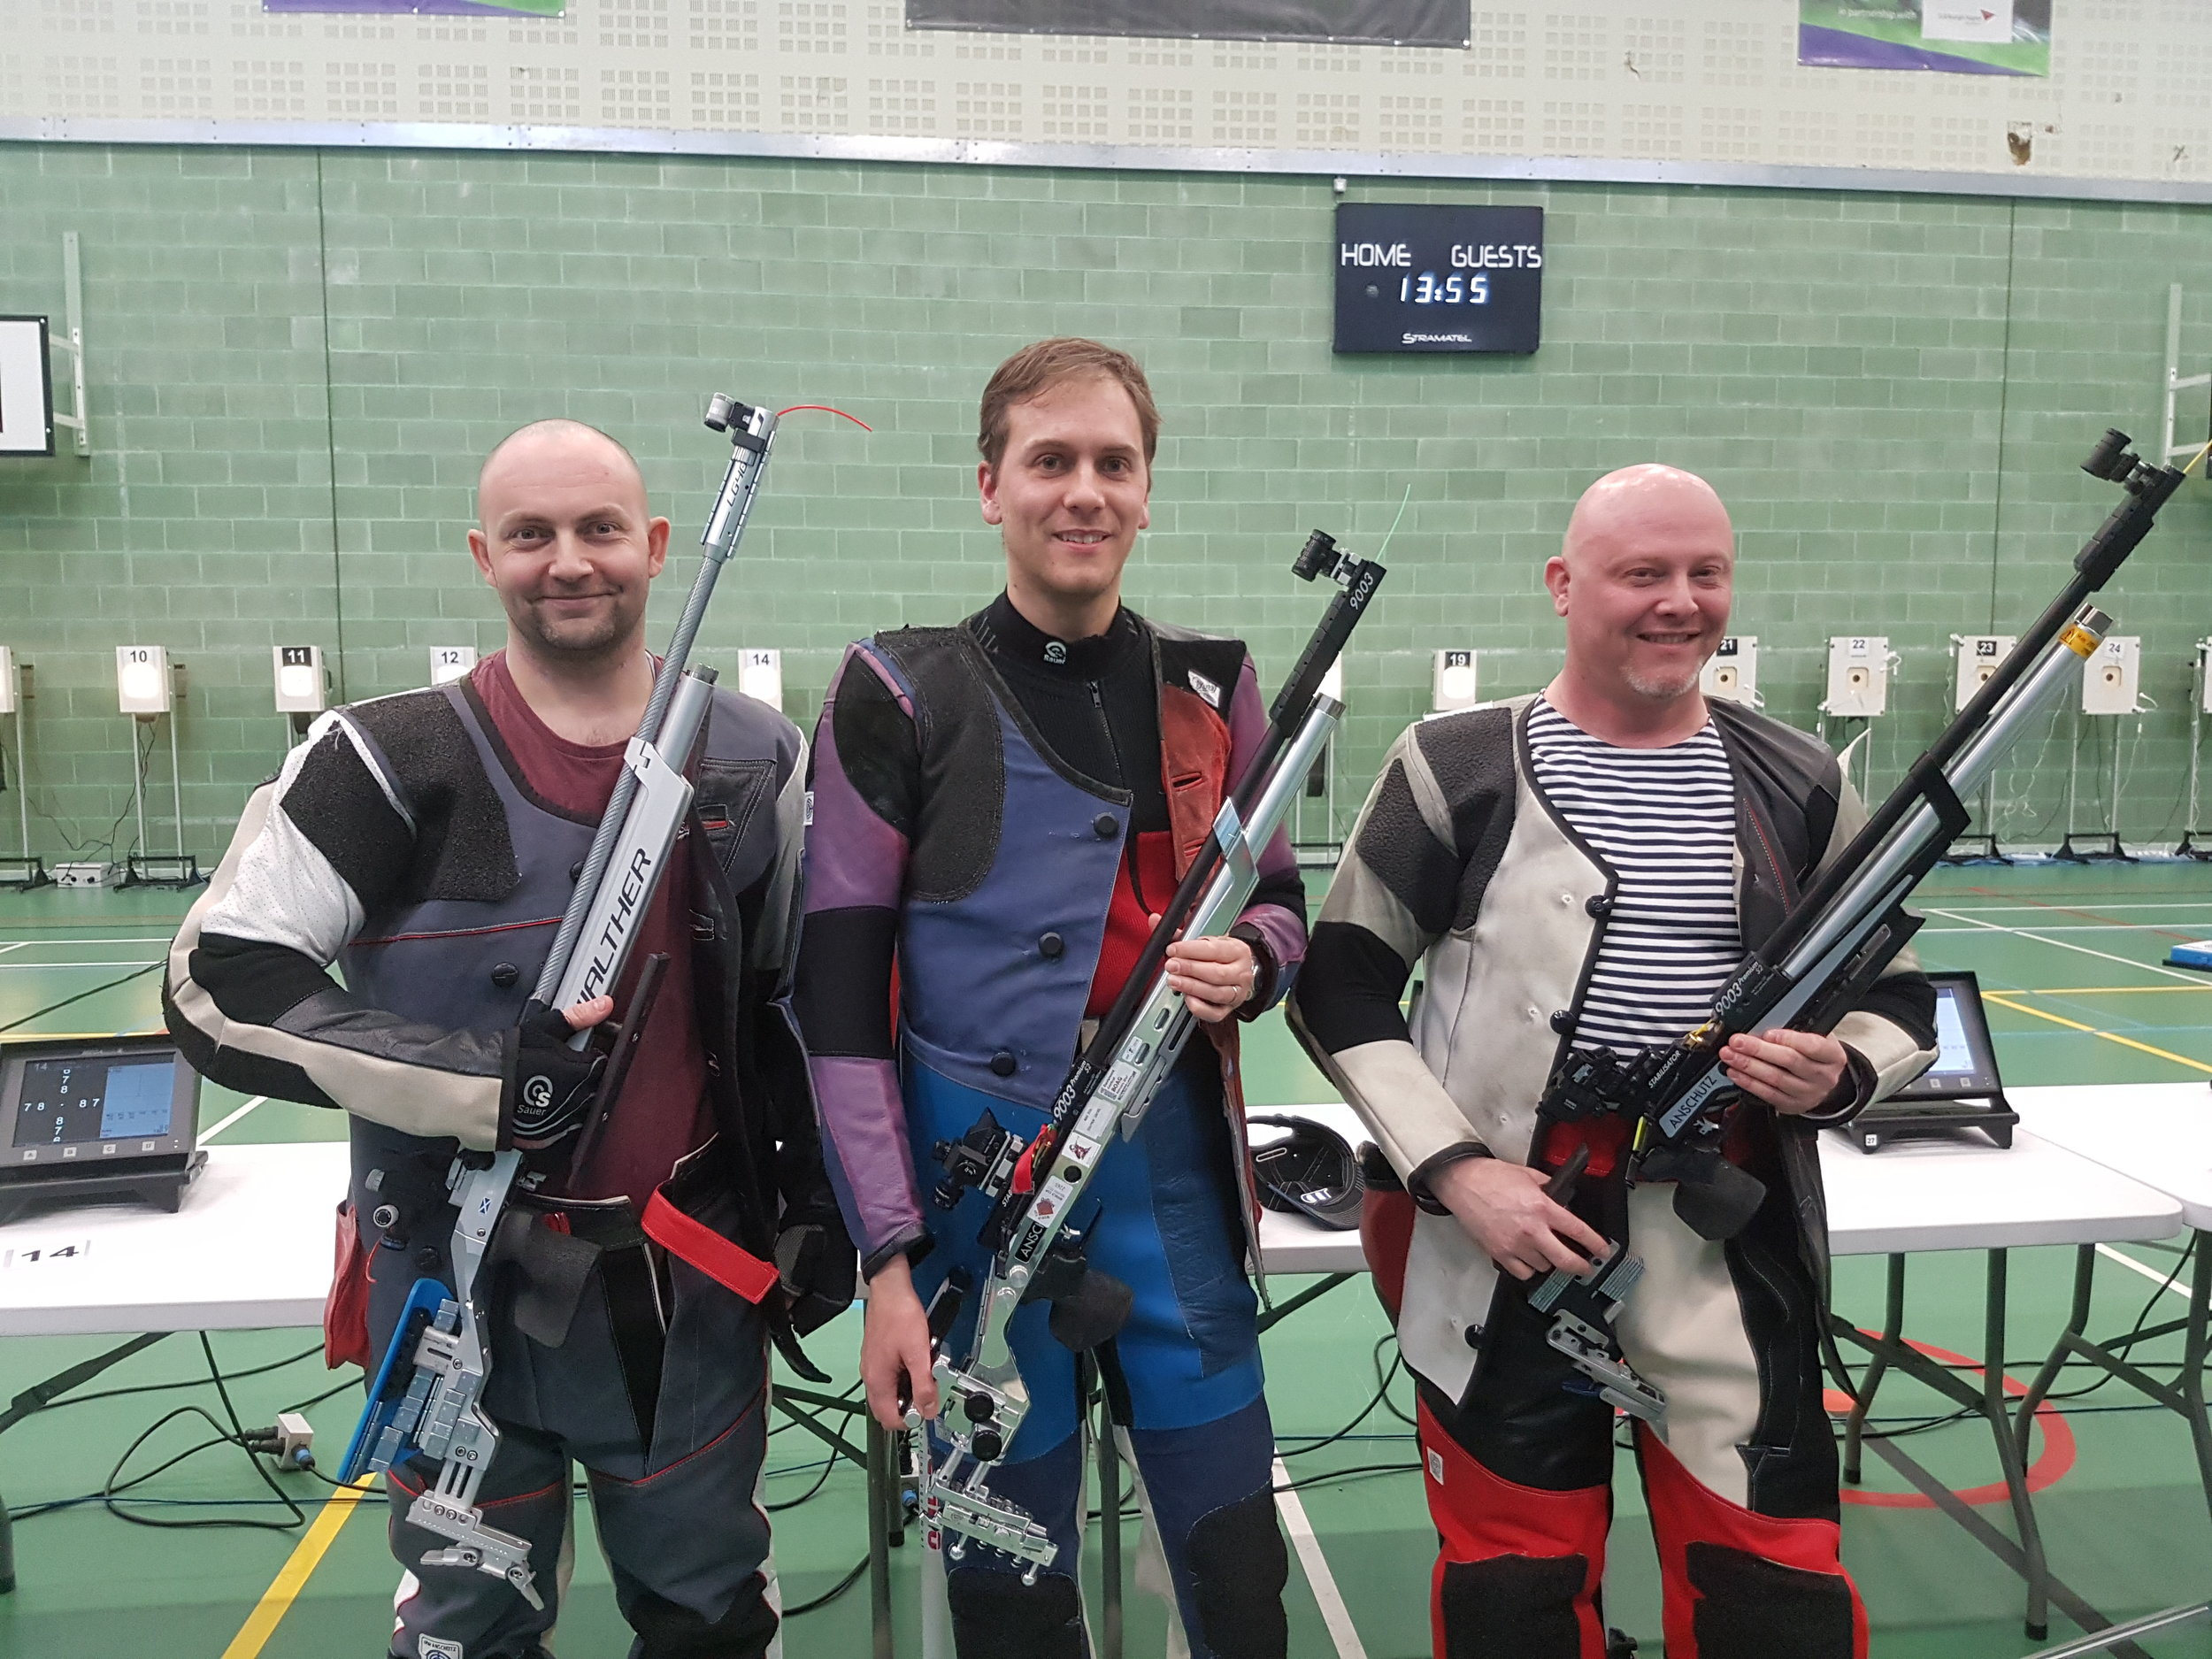 Winners - Men's 10m Air Rifle Championships